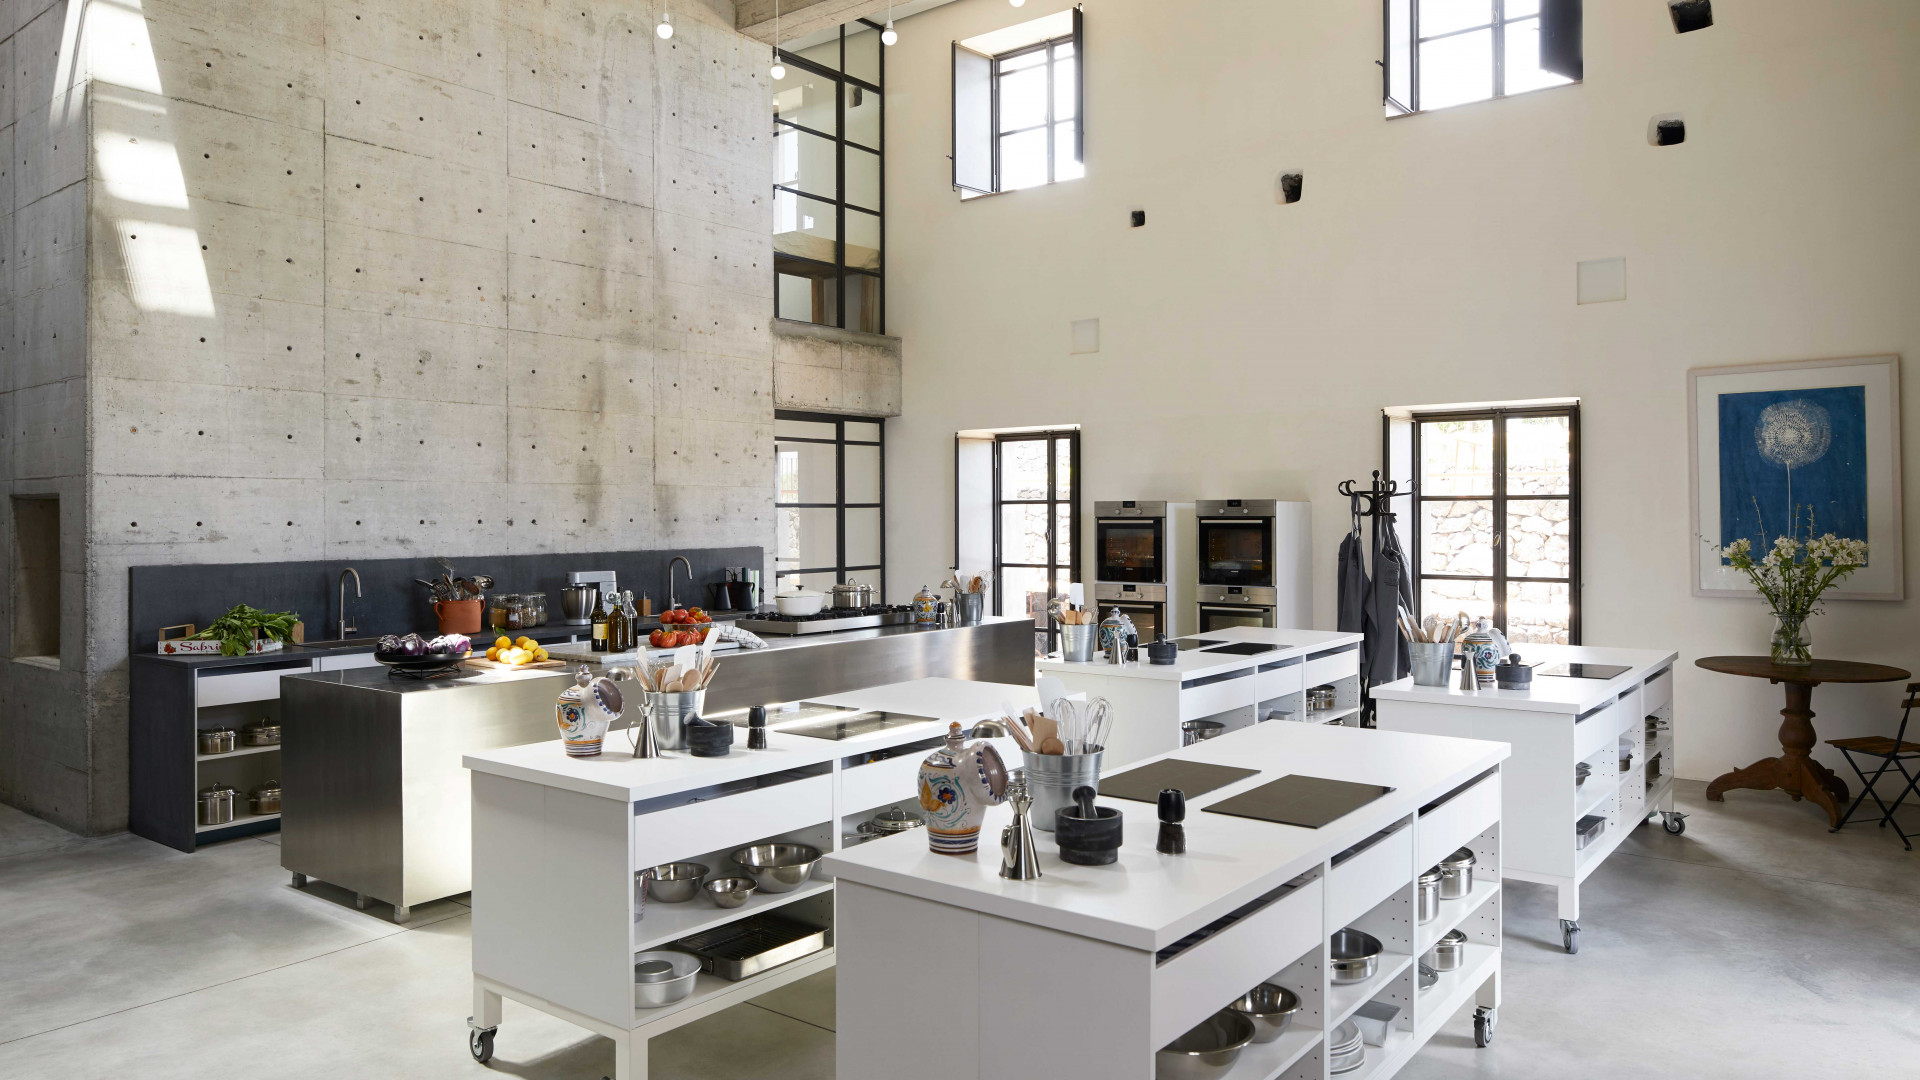 The kitchen at Rocca delle Tre Contrade where the hands-on portion of the culinary experience takes place